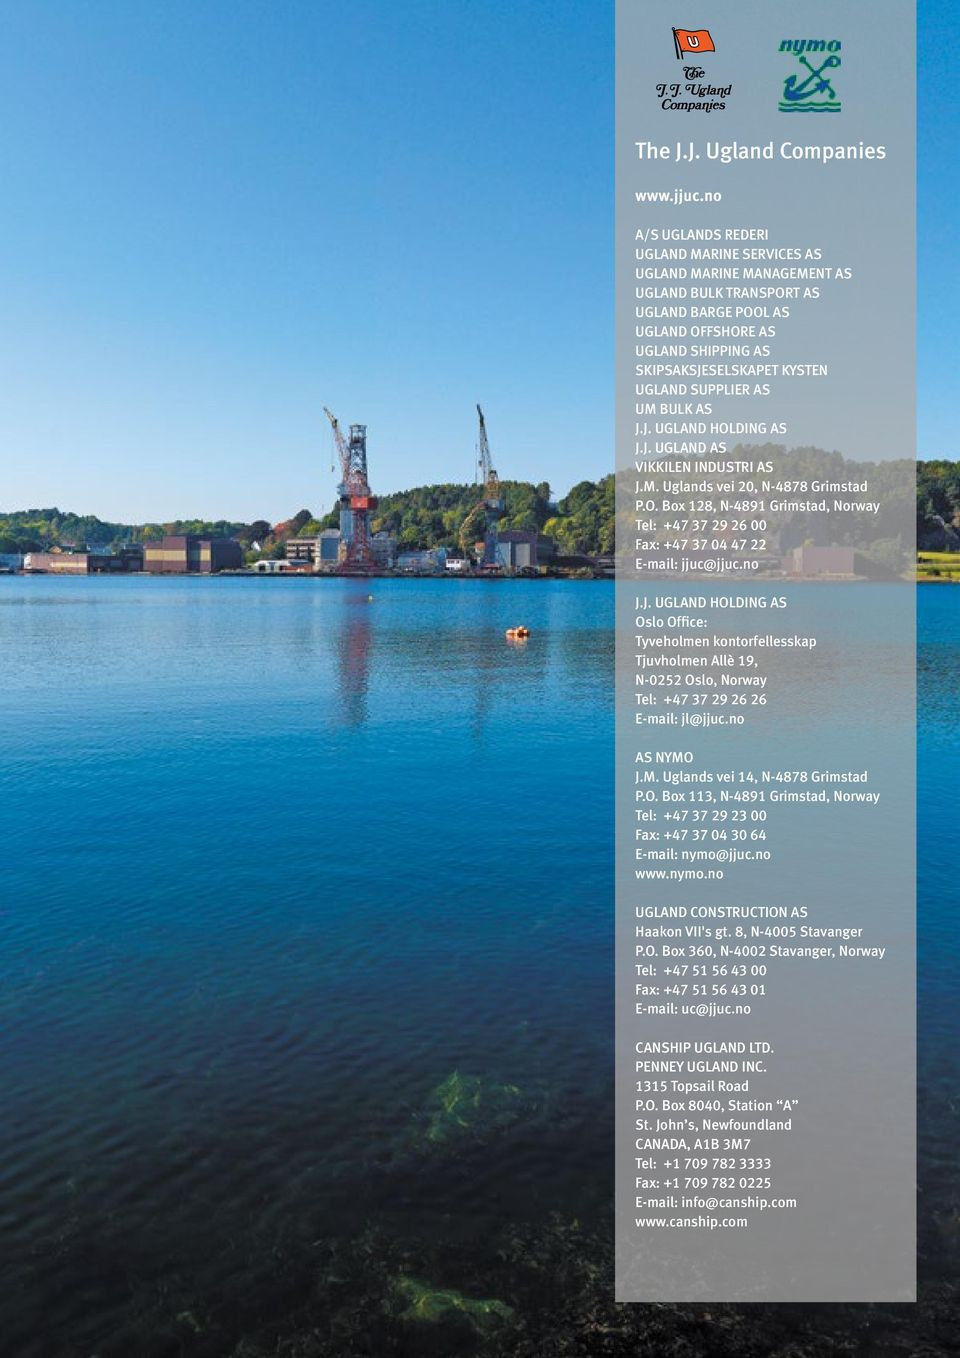 SUPPLIER AS UM BULK AS J.J. UGLAND HOLDING AS J.J. UGLAND AS VIKKILEN INDUSTRI AS J.M. Uglands vei 20, N-4878 Grimstad P.O. Box 128, N-4891 Grimstad, Norway Tel: +47 37 29 26 00 Fax: +47 37 04 47 22 E-mail: jjuc@jjuc.